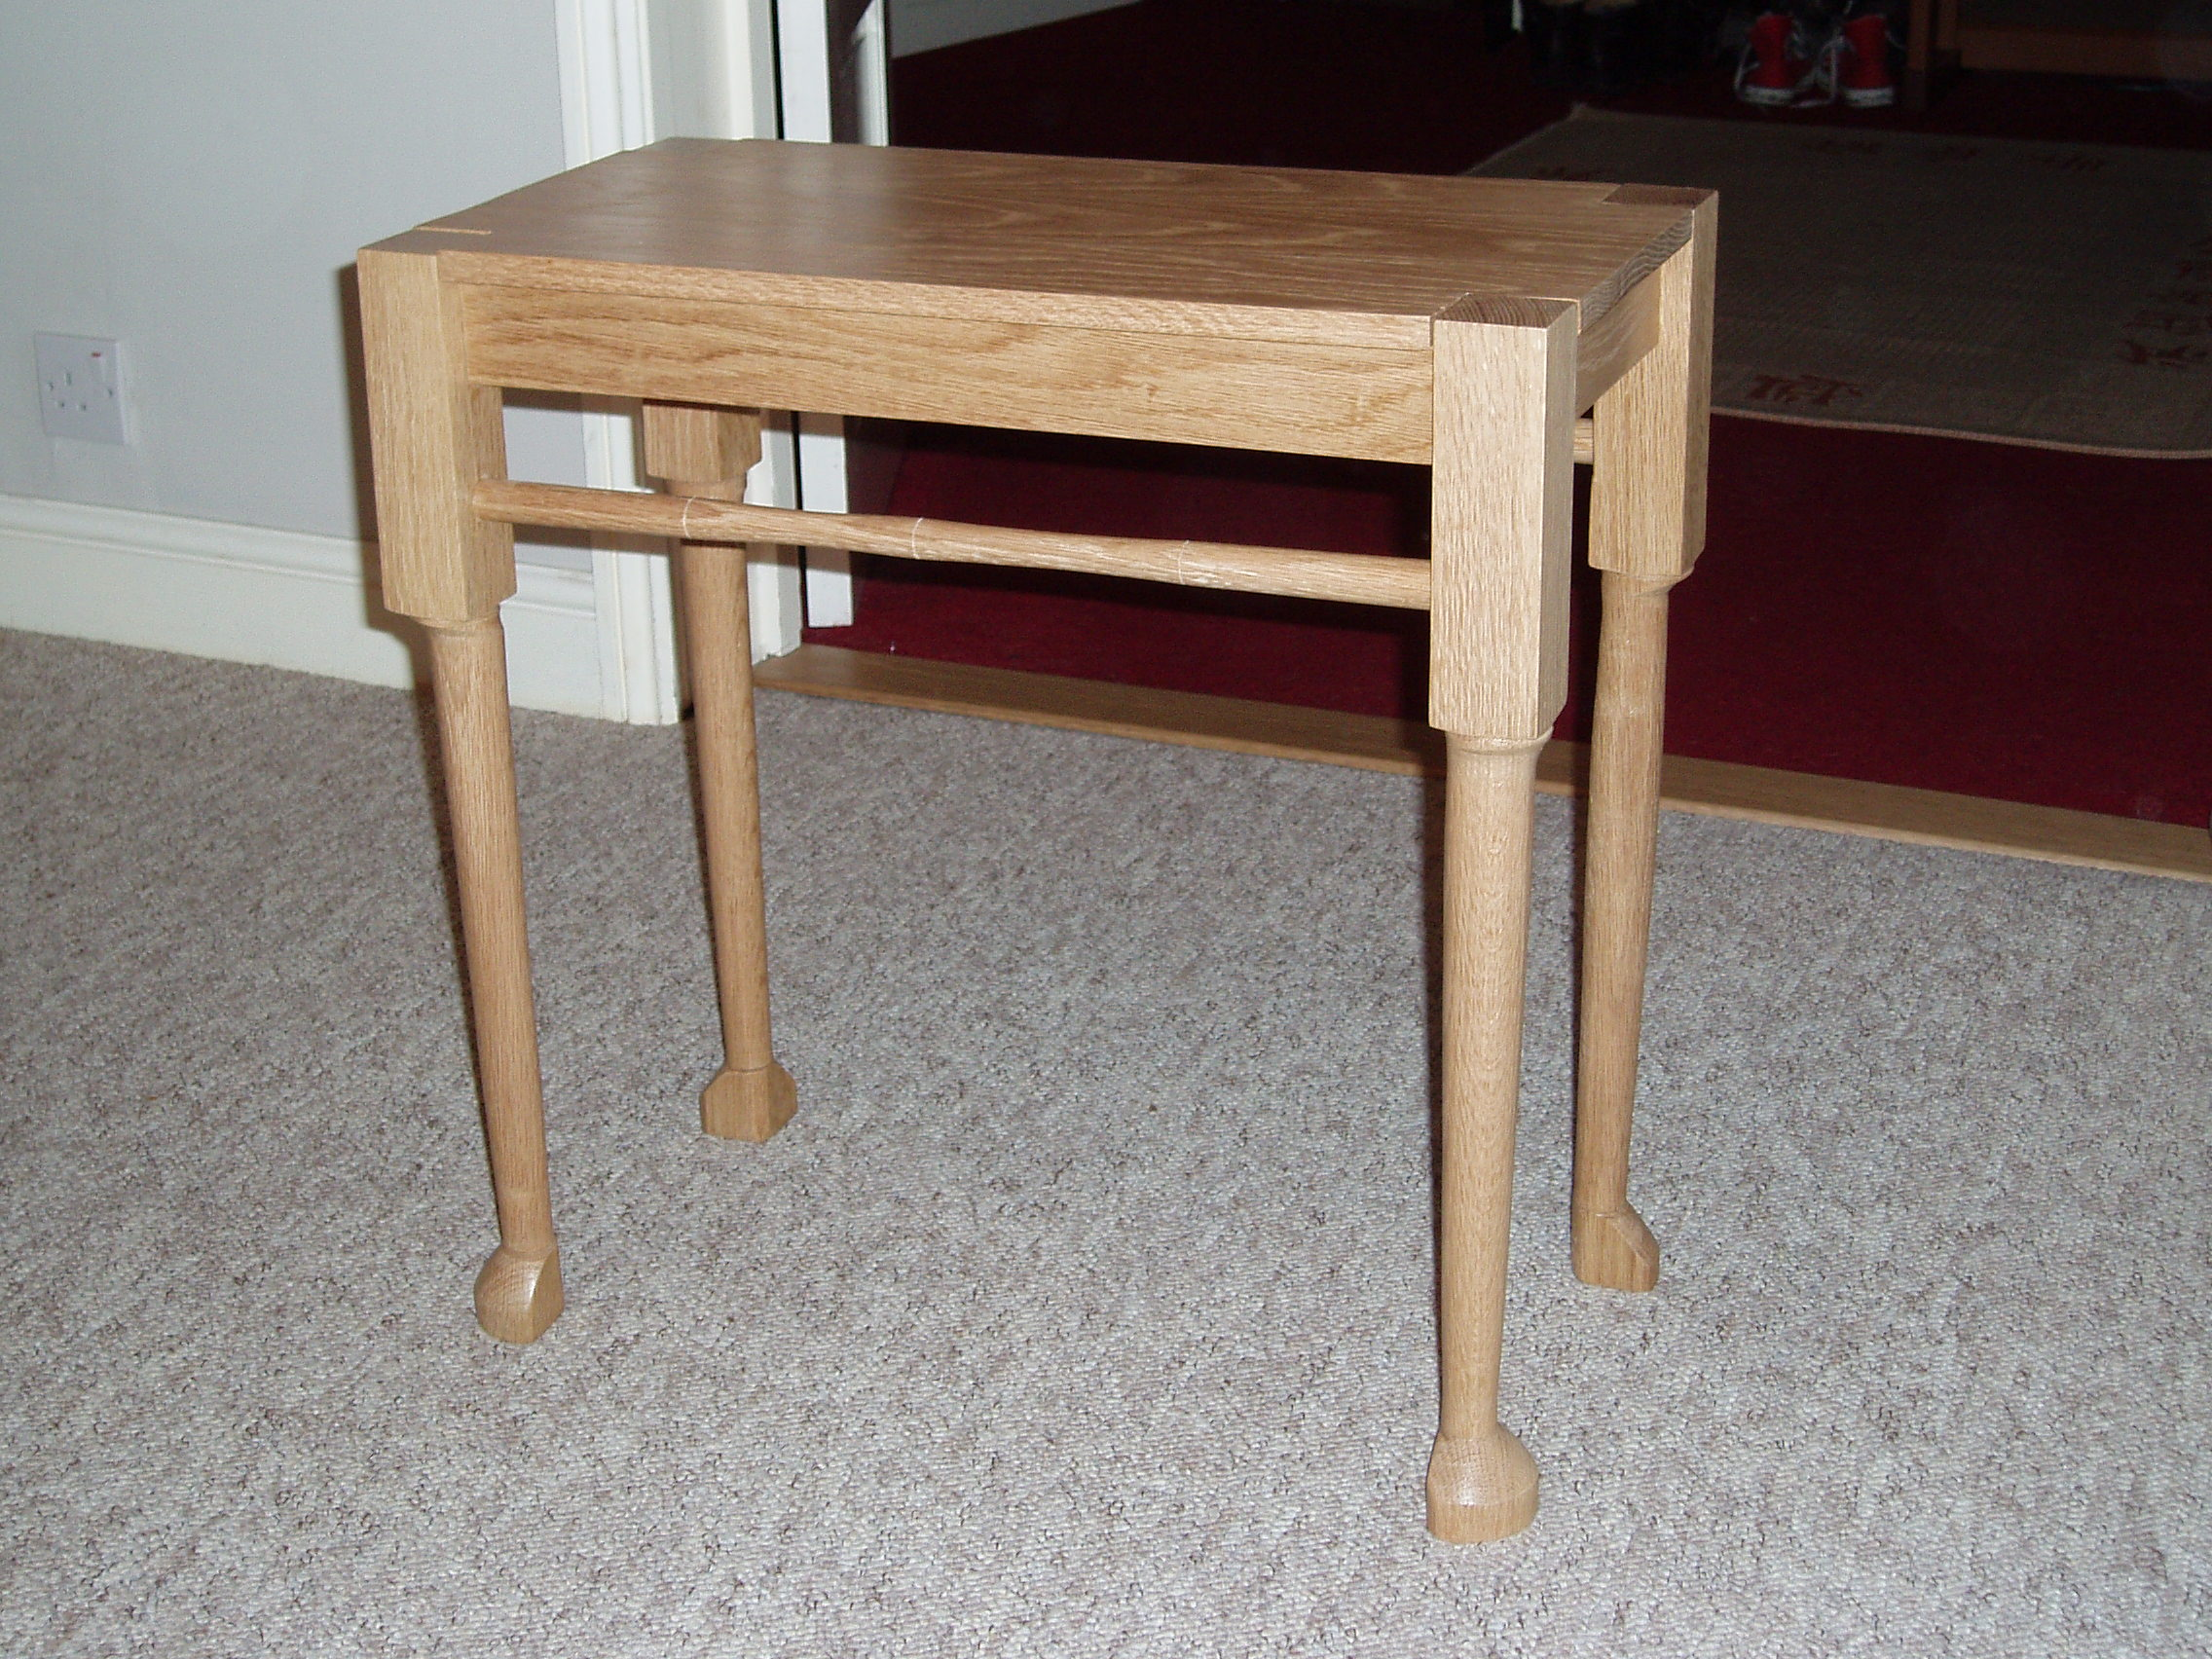 Finished table wide side